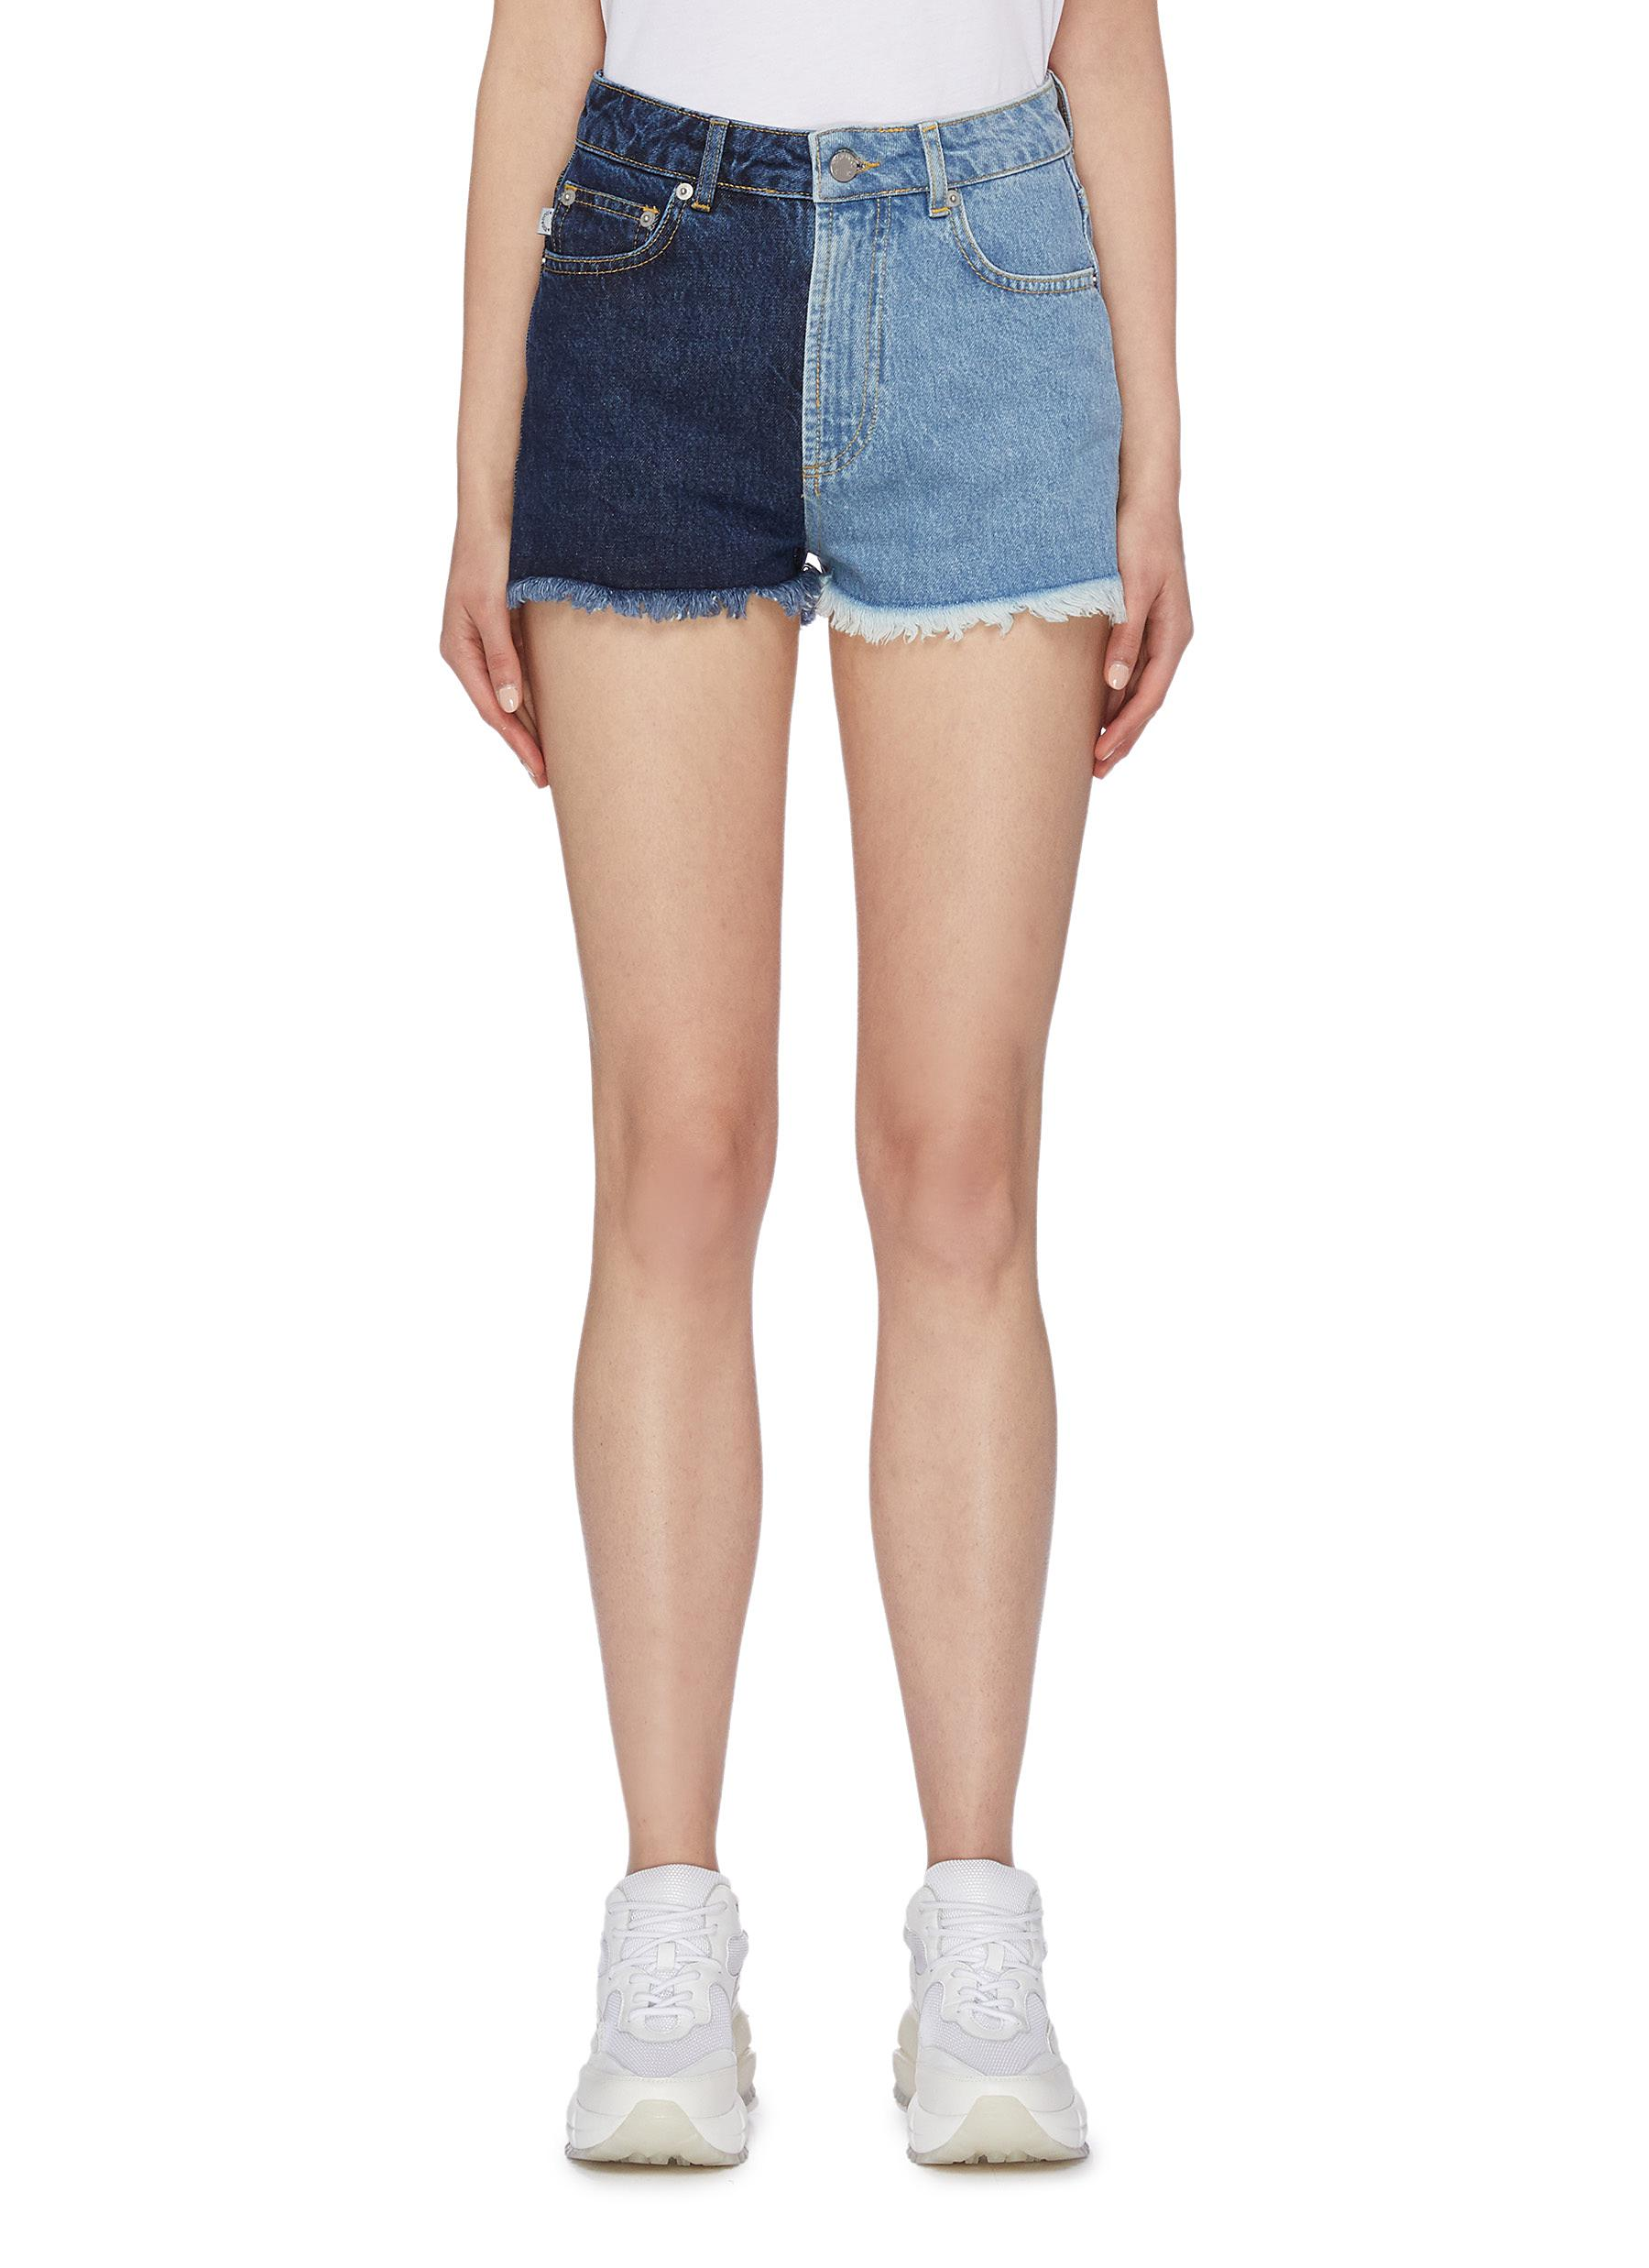 50/50 colourblock frayed cuff denim shorts by Fiorucci